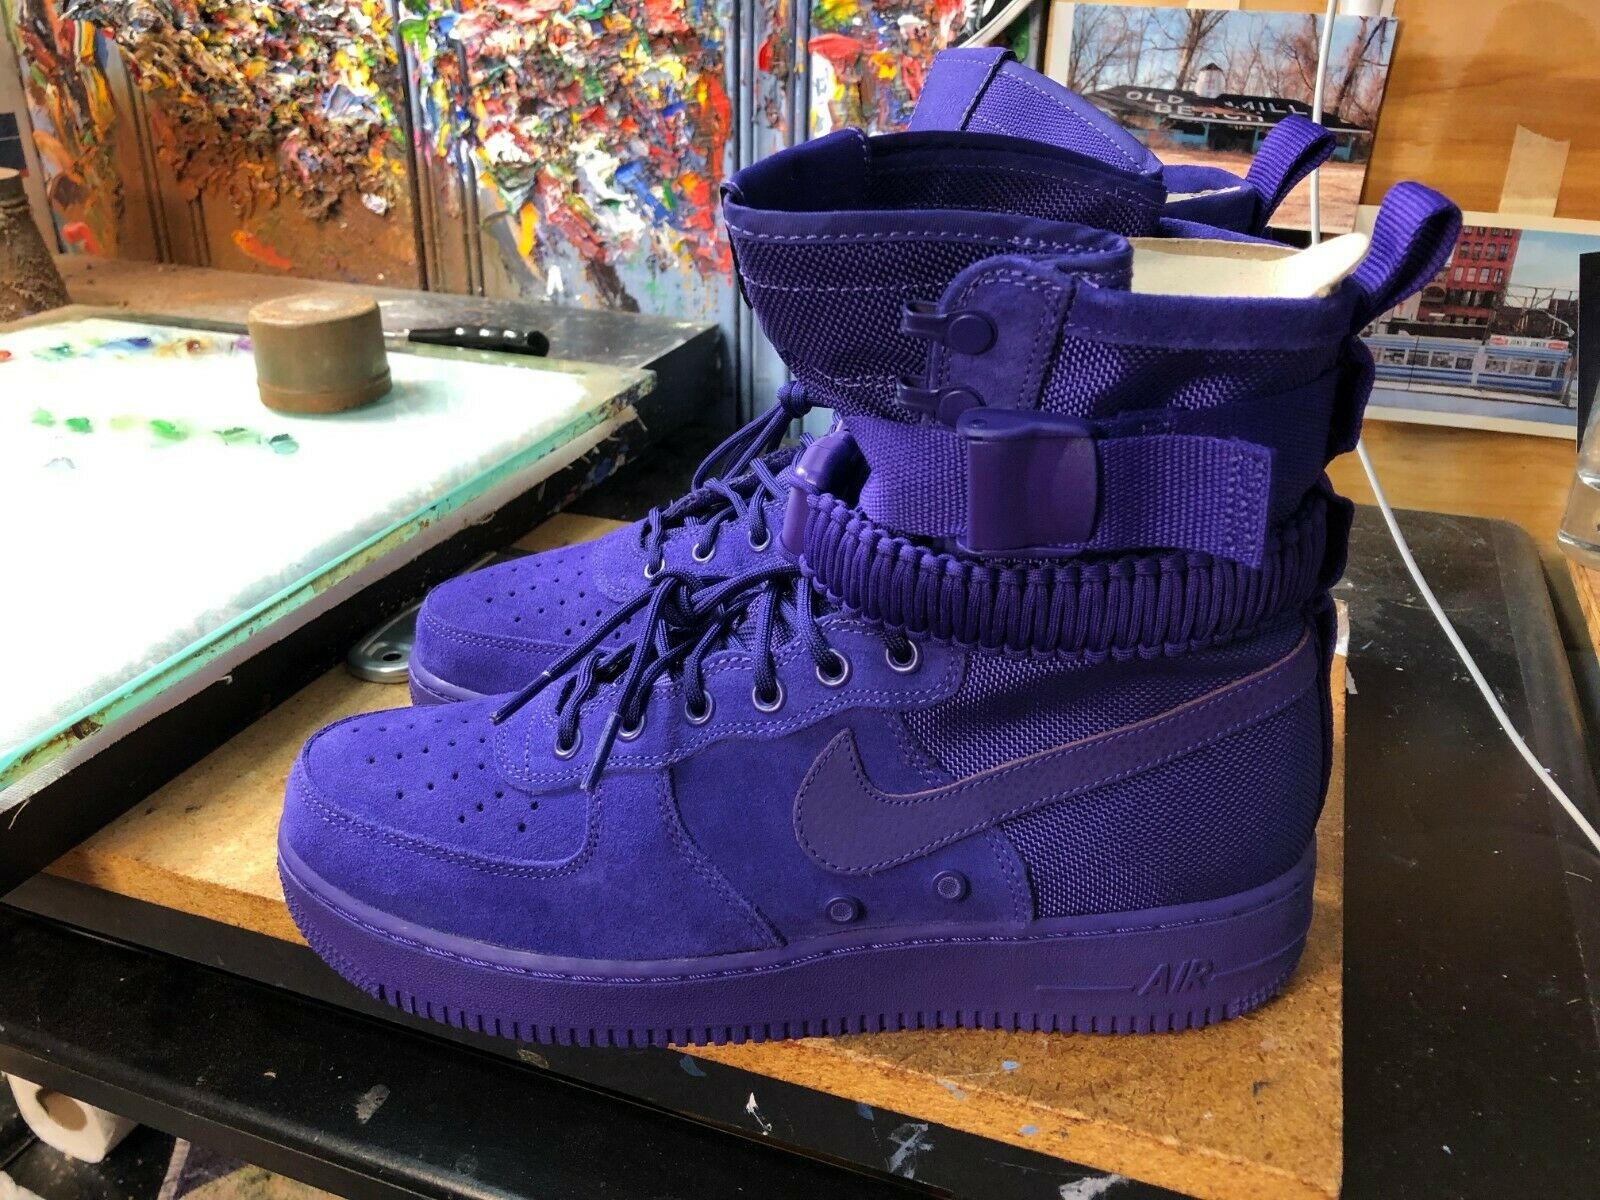 Nike SF AF 1 Air Force 1 Court Purple Suede  Size US 12 Men 864024 500 New